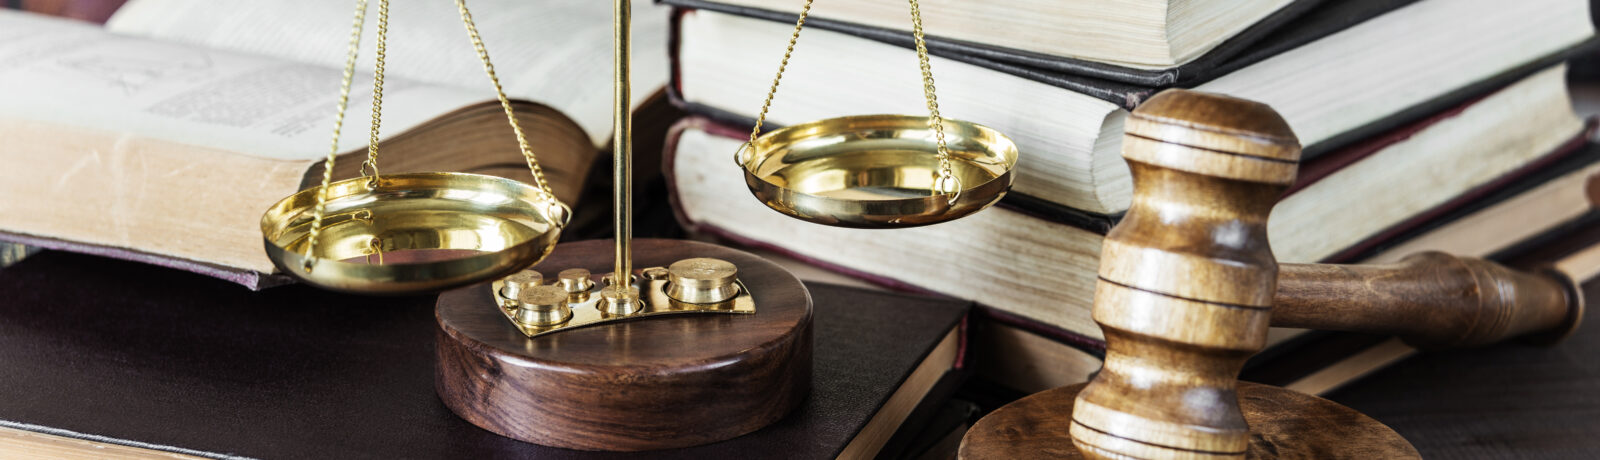 Scales and gavel against background of books.